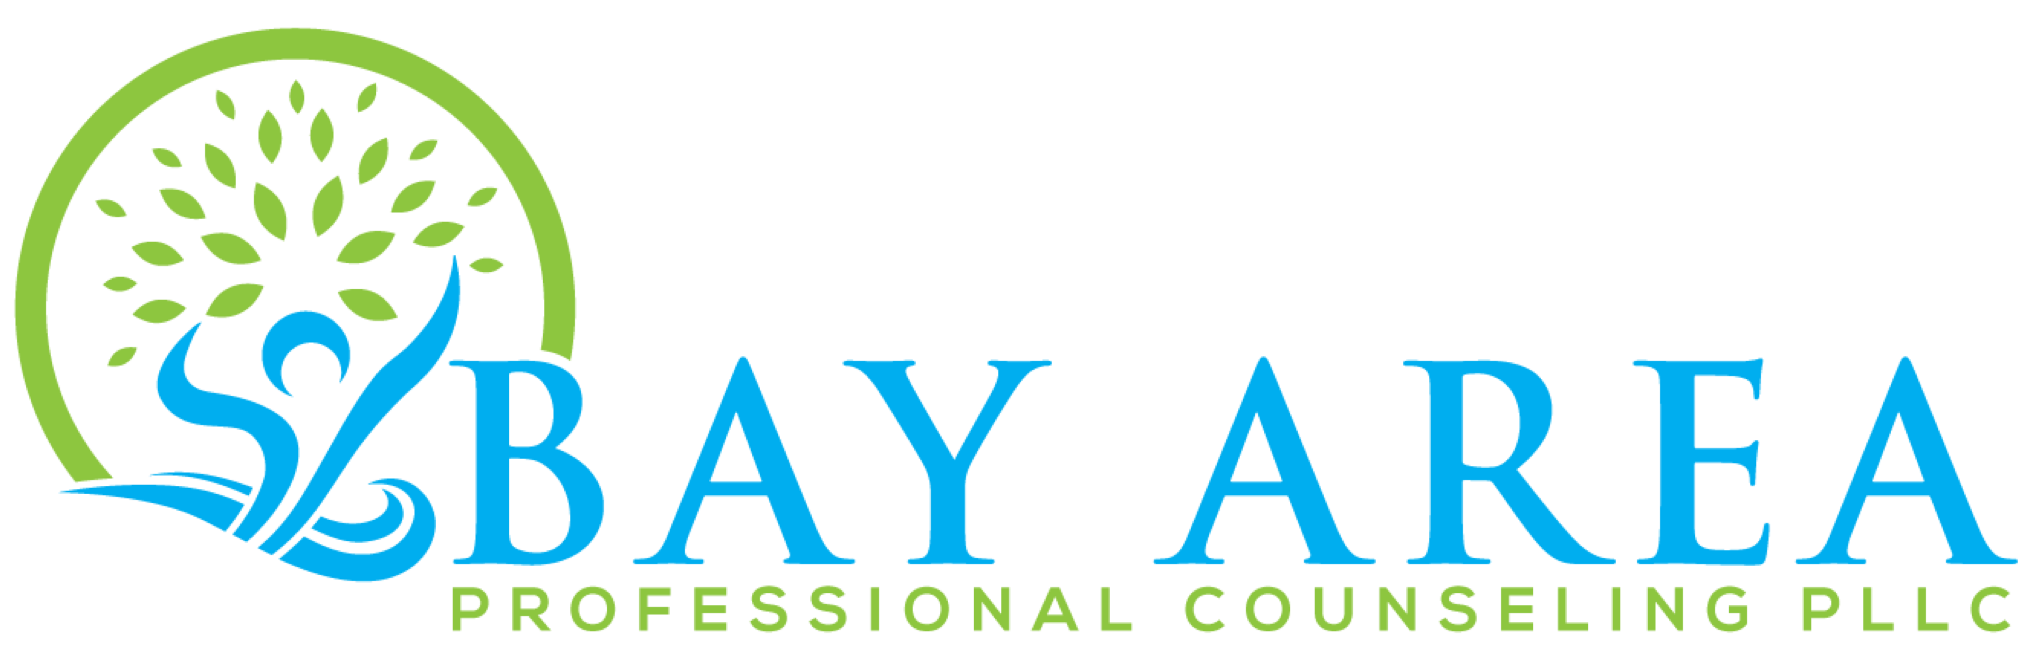 Bay Area Professional Counseling PLLC